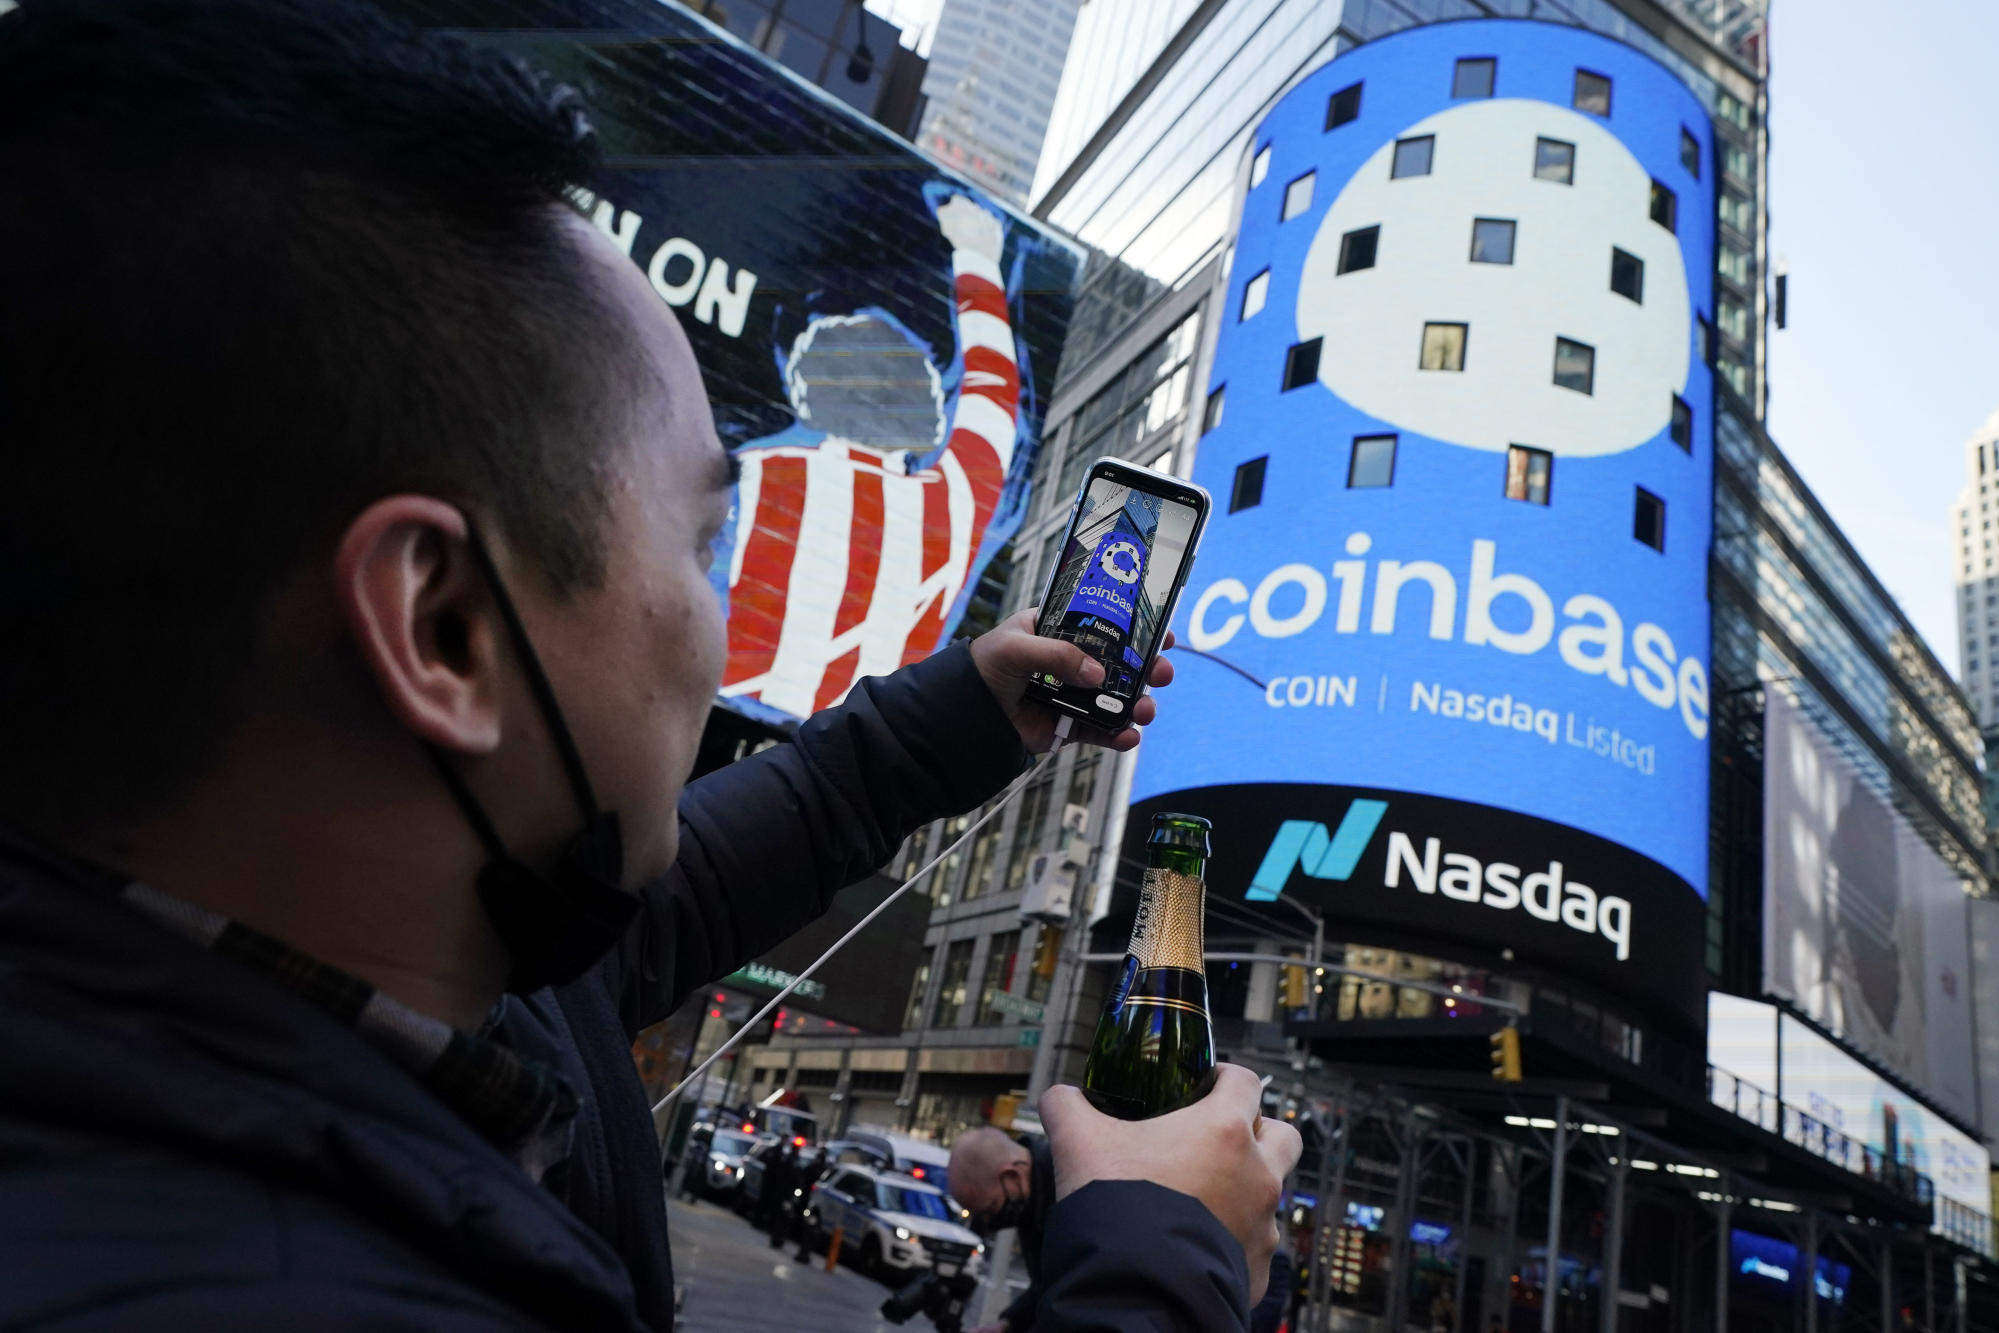 Coinbase's COIN stock trading on Nasdaq is off to a rocky start